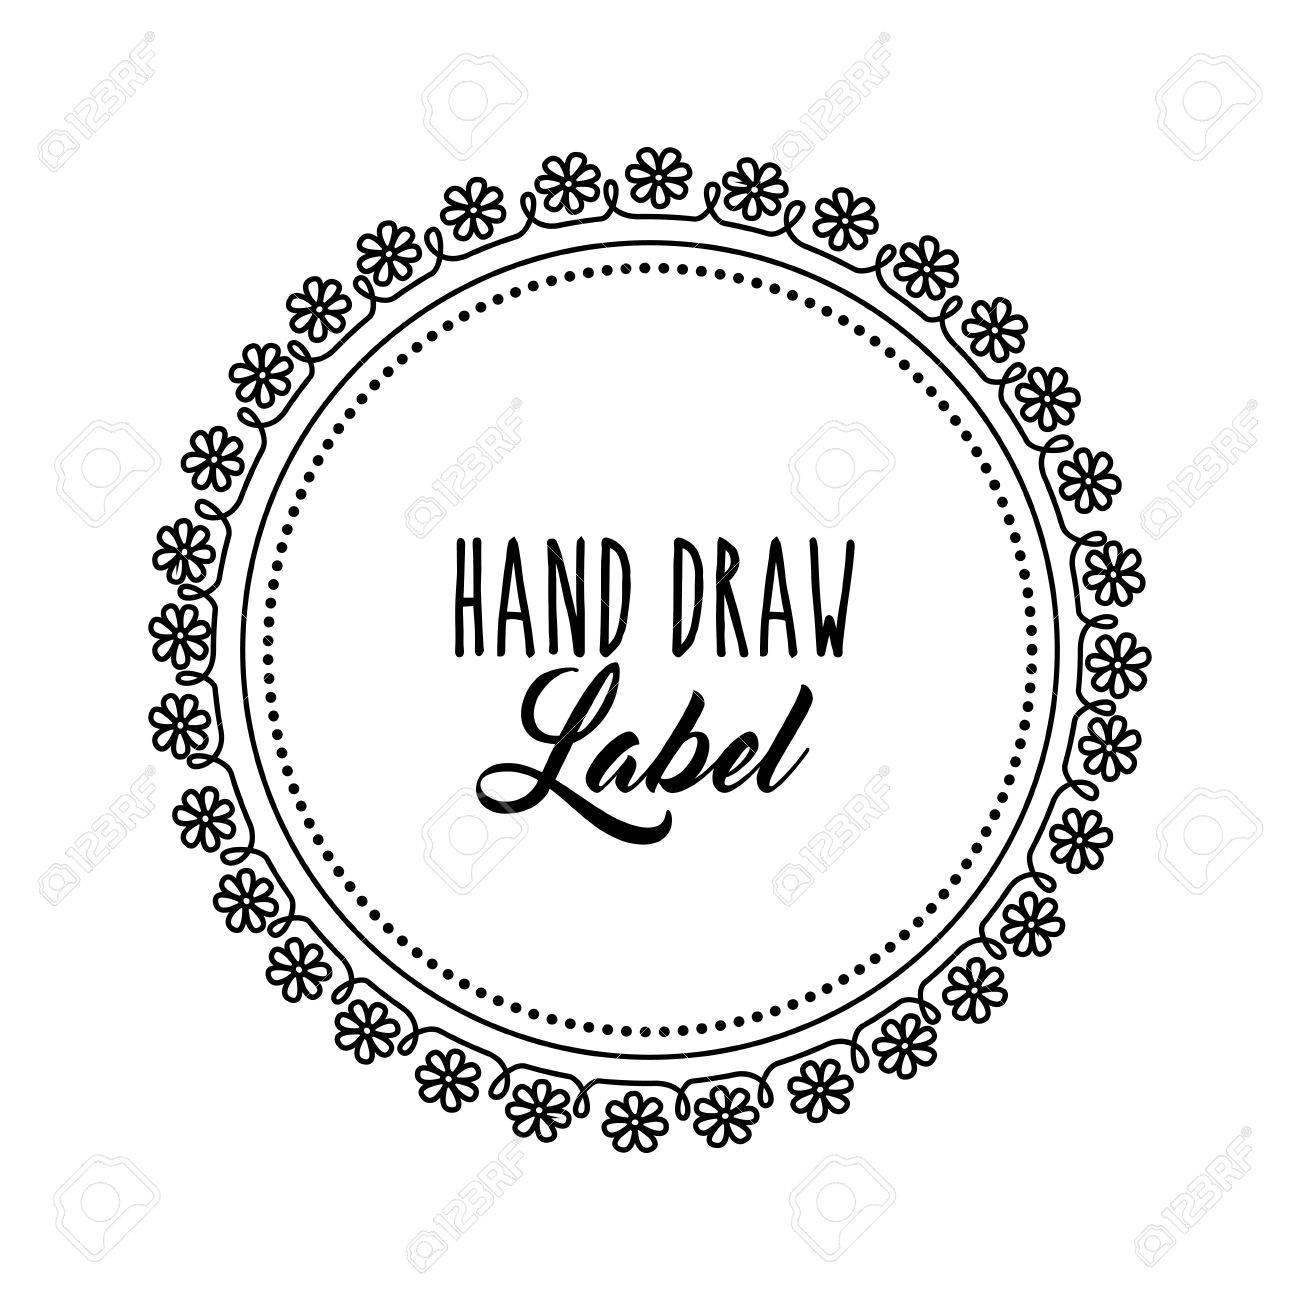 Stamp Drawing at GetDrawings com | Free for personal use